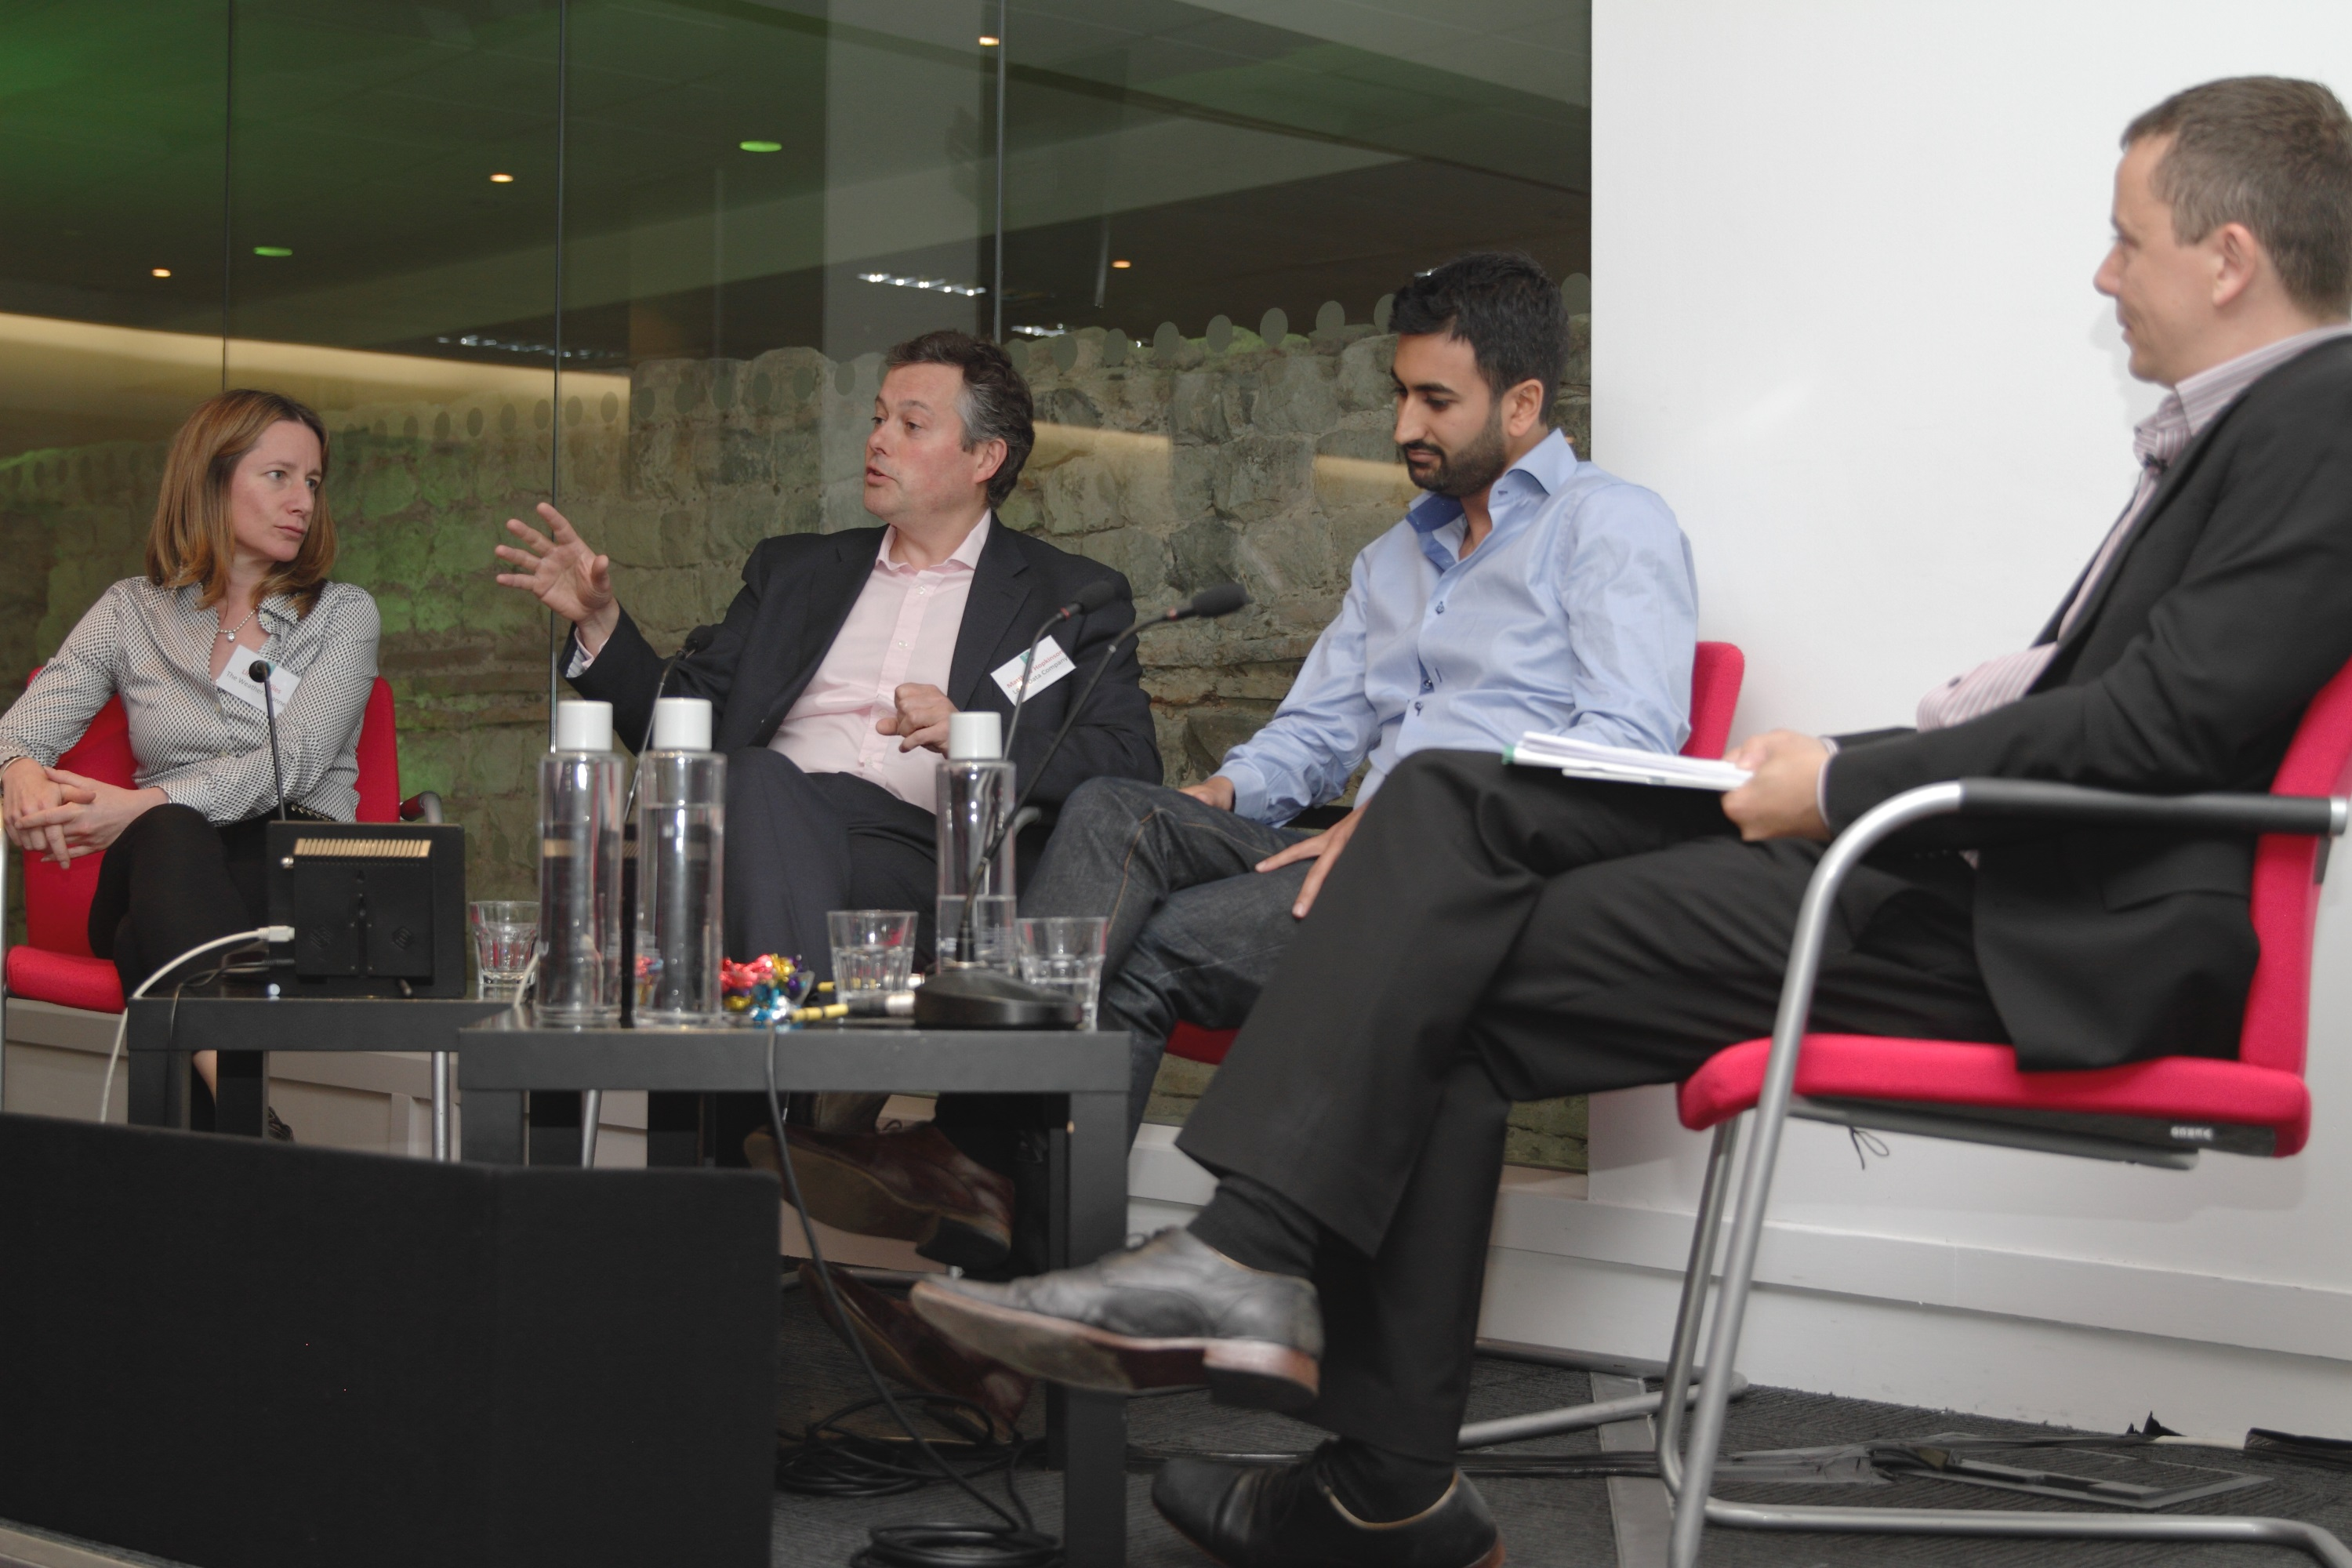 10 of the Best Quotes from the Mobile Retail Summit